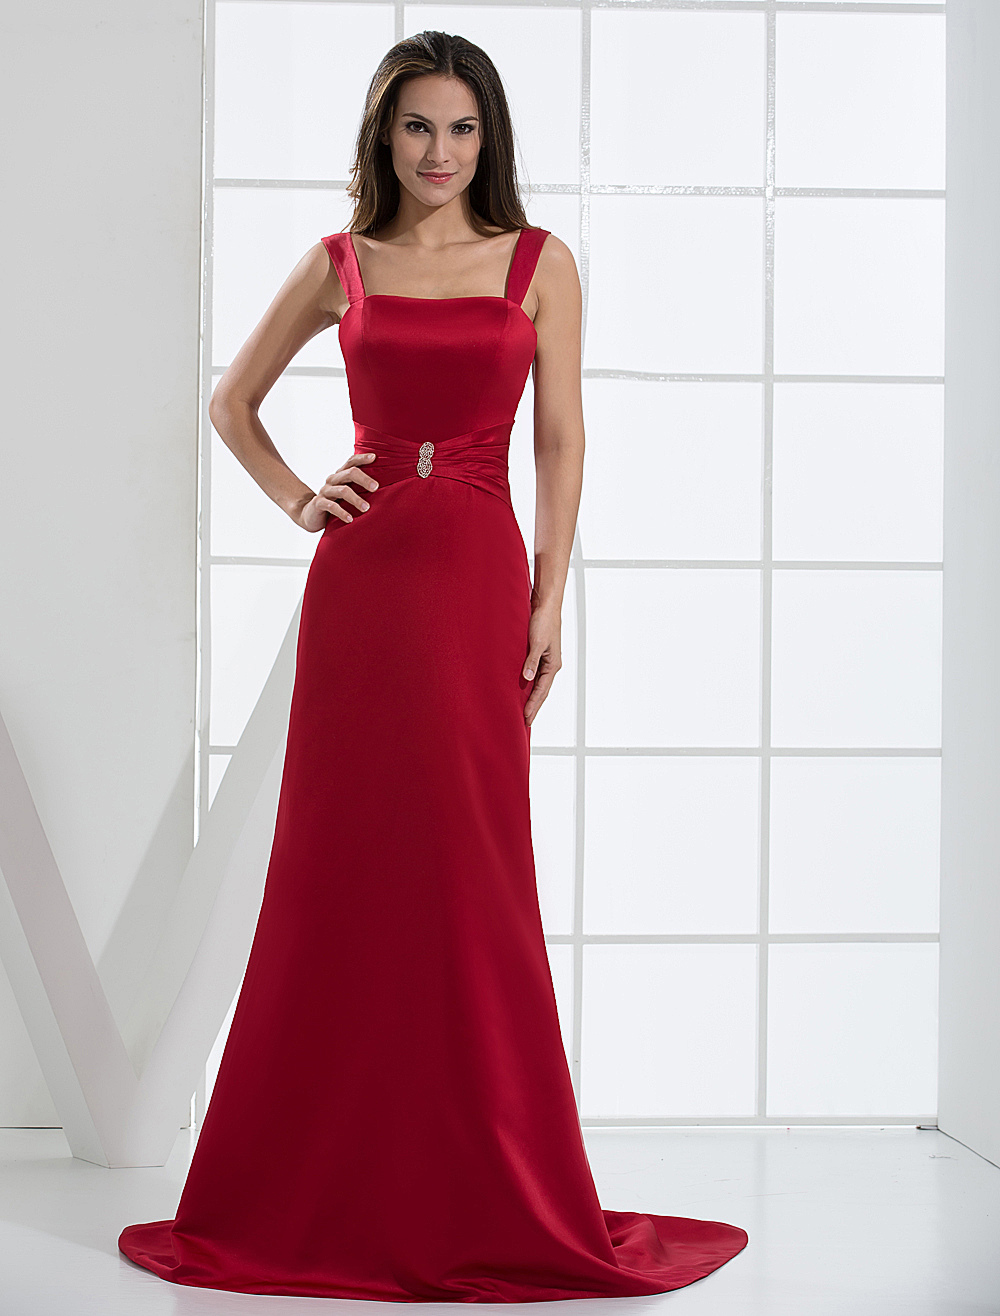 Burgundy Spaghetti Satin Evening Dress